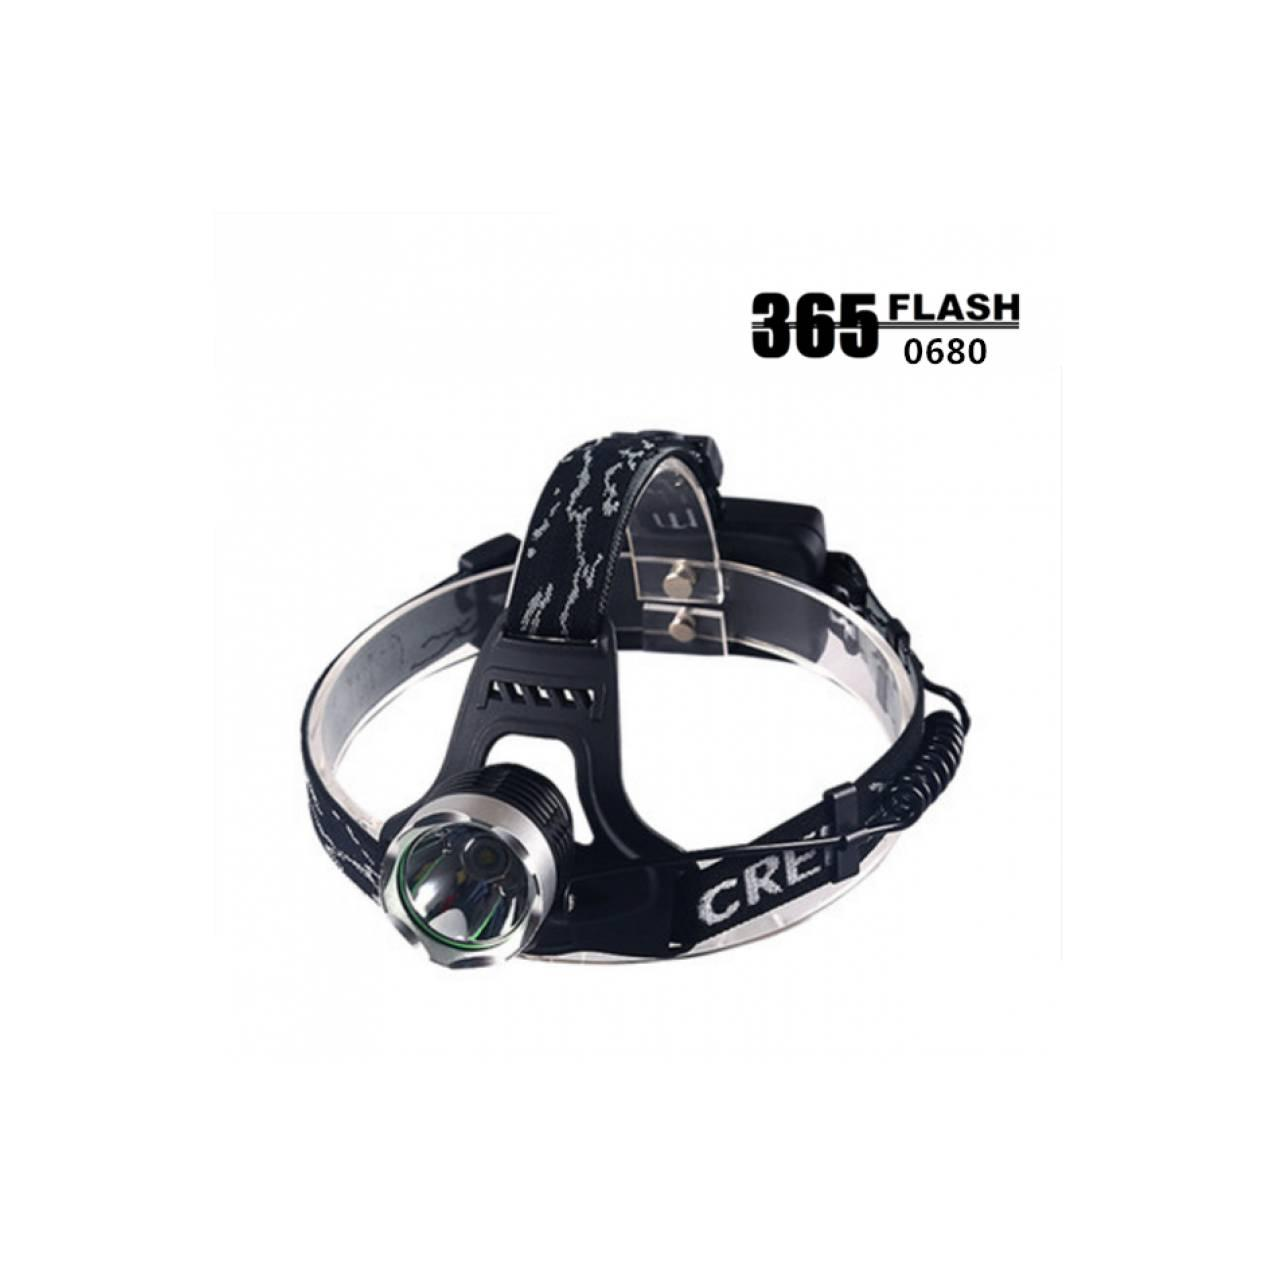 Senter Kepala Senter Serbaguna Police Multifungsi 365 Flash Light Tbe